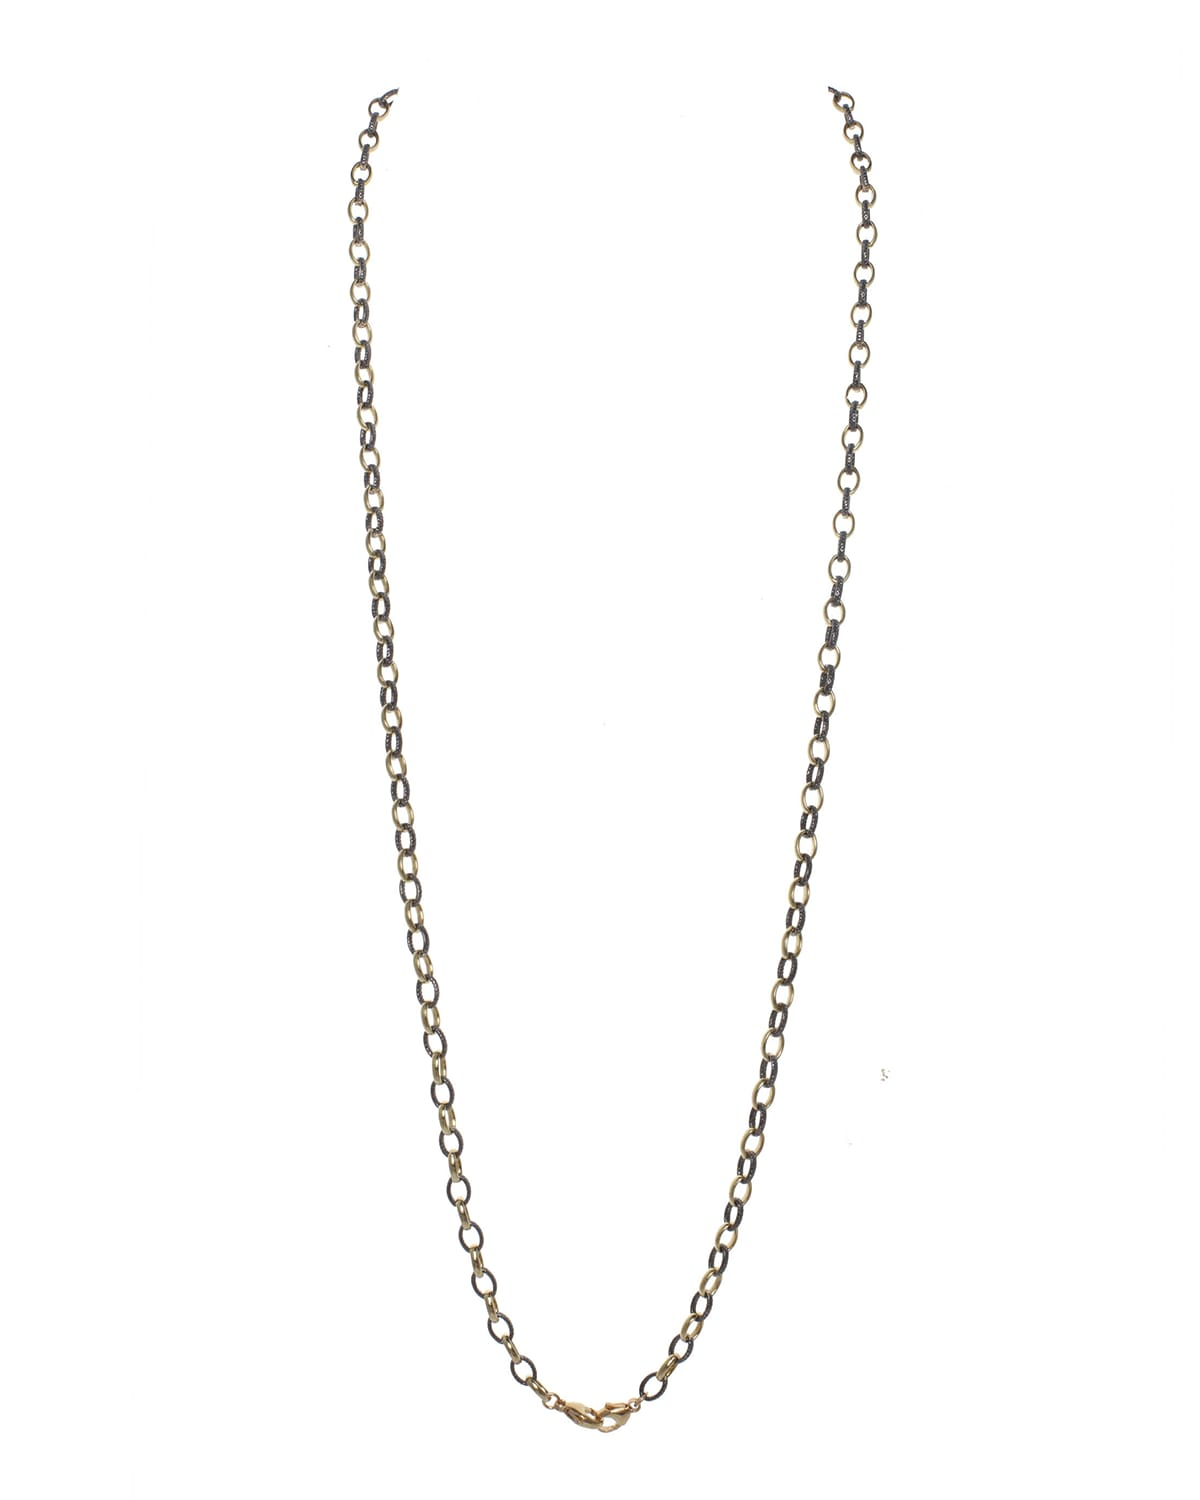 Vermeil and Sterling Silver Mask Chain/Necklace